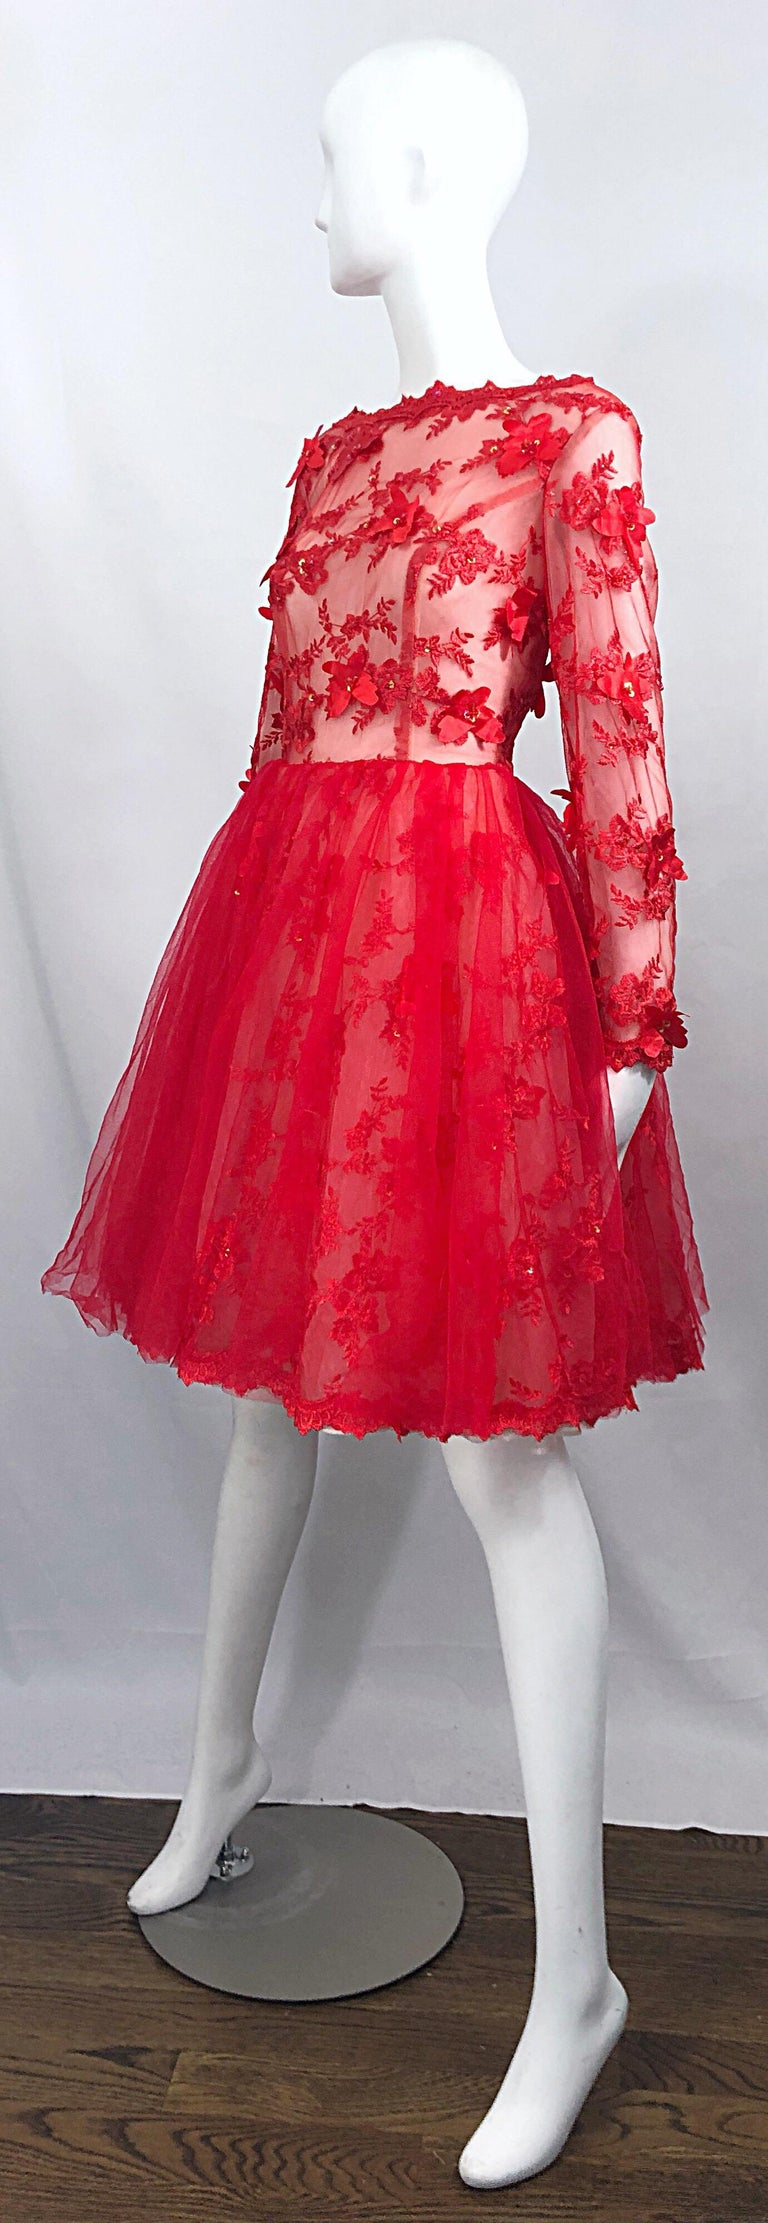 Women's Vintage Couture 1990s Does 1950s Semi Sheer Sz 10 / 12 Lipstick Red Sequin Dress For Sale